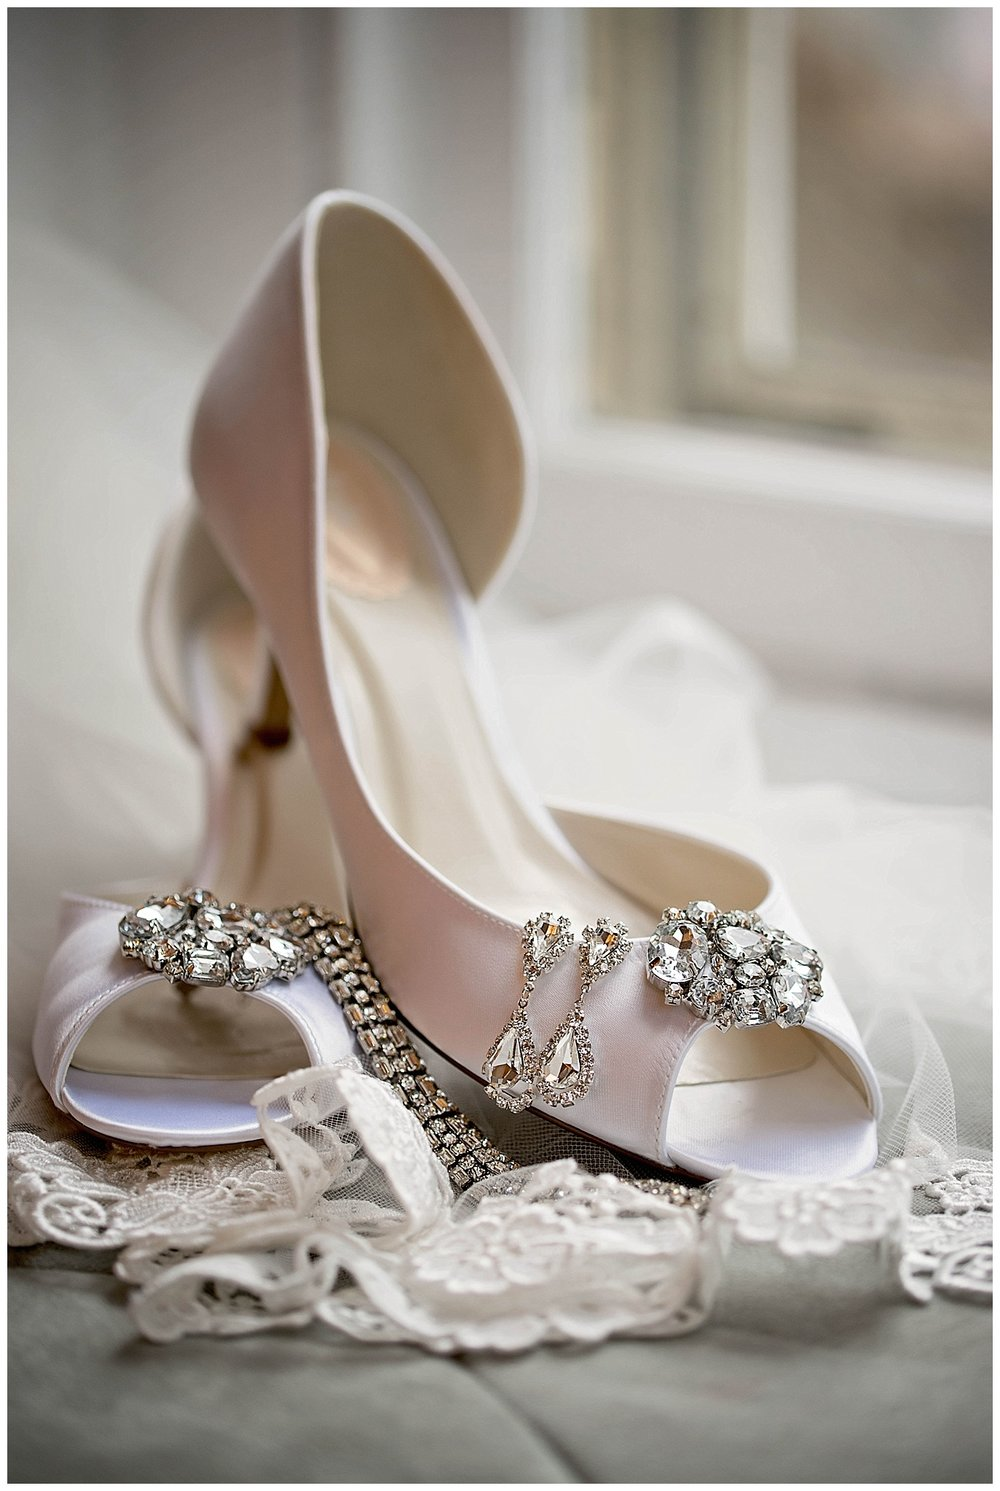 Richmond, Virginia Wedding Details